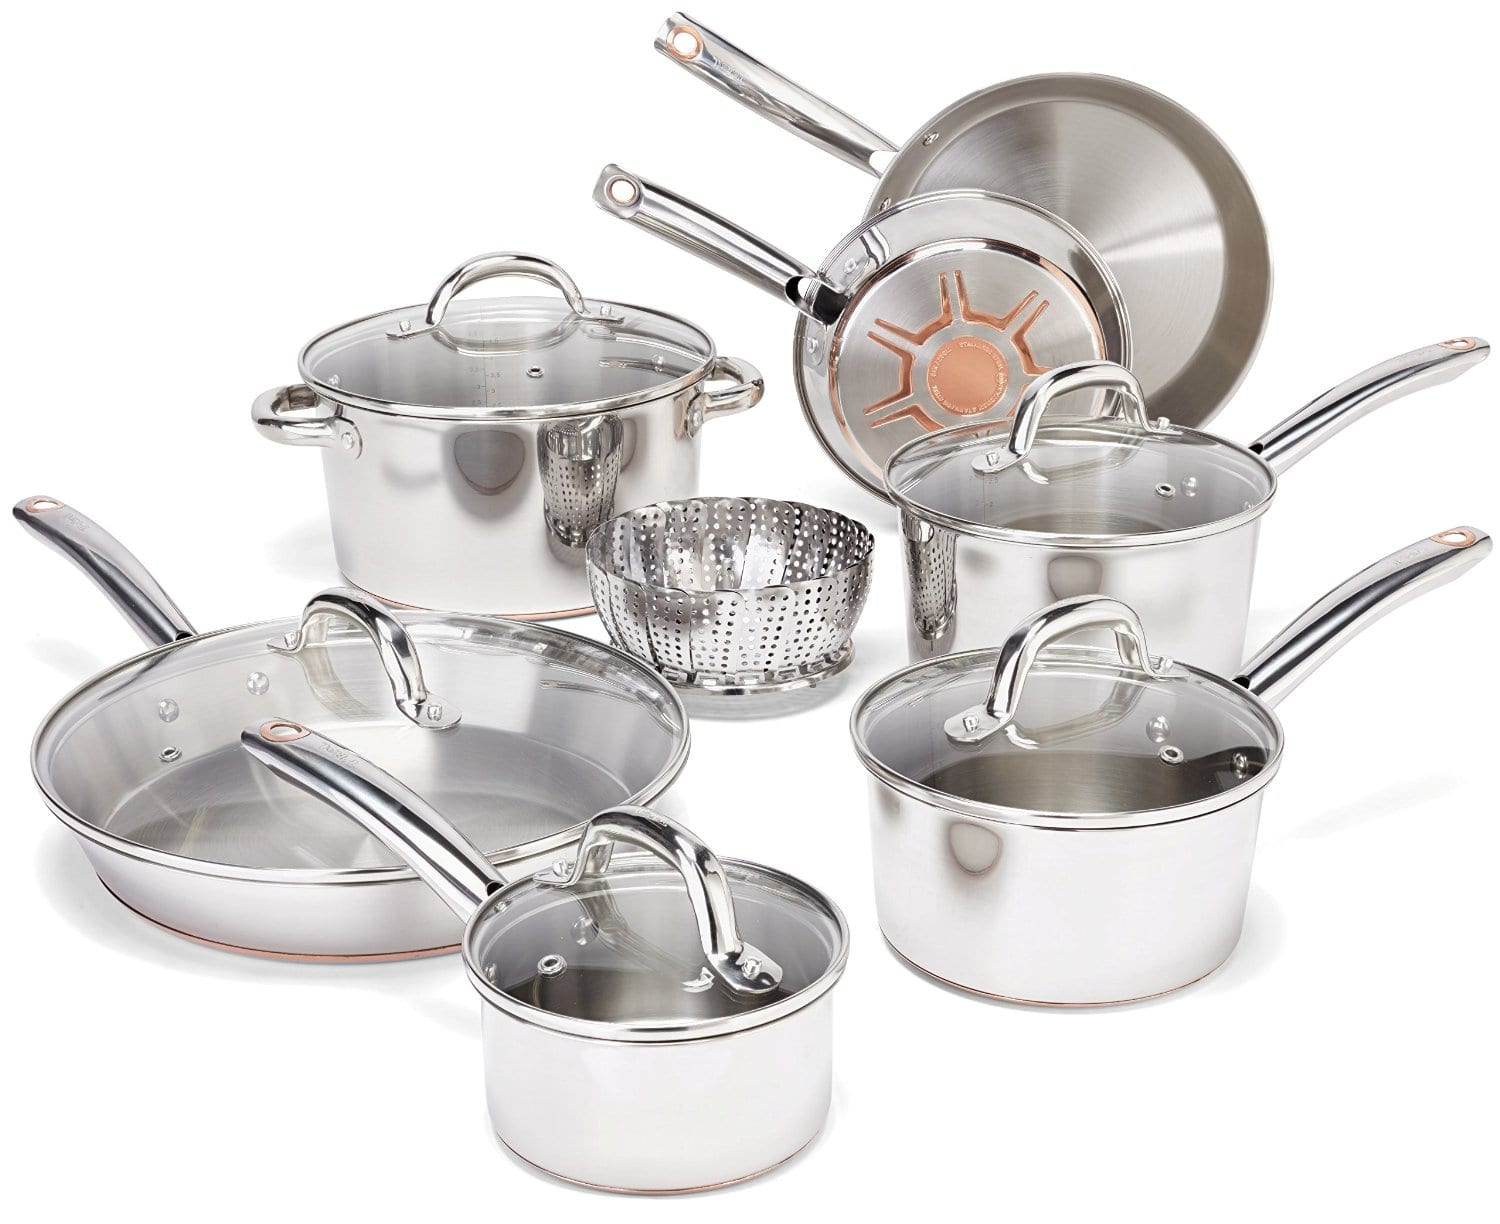 13 Piece T Fal Ultimate Stainless Steel Copper Bottom